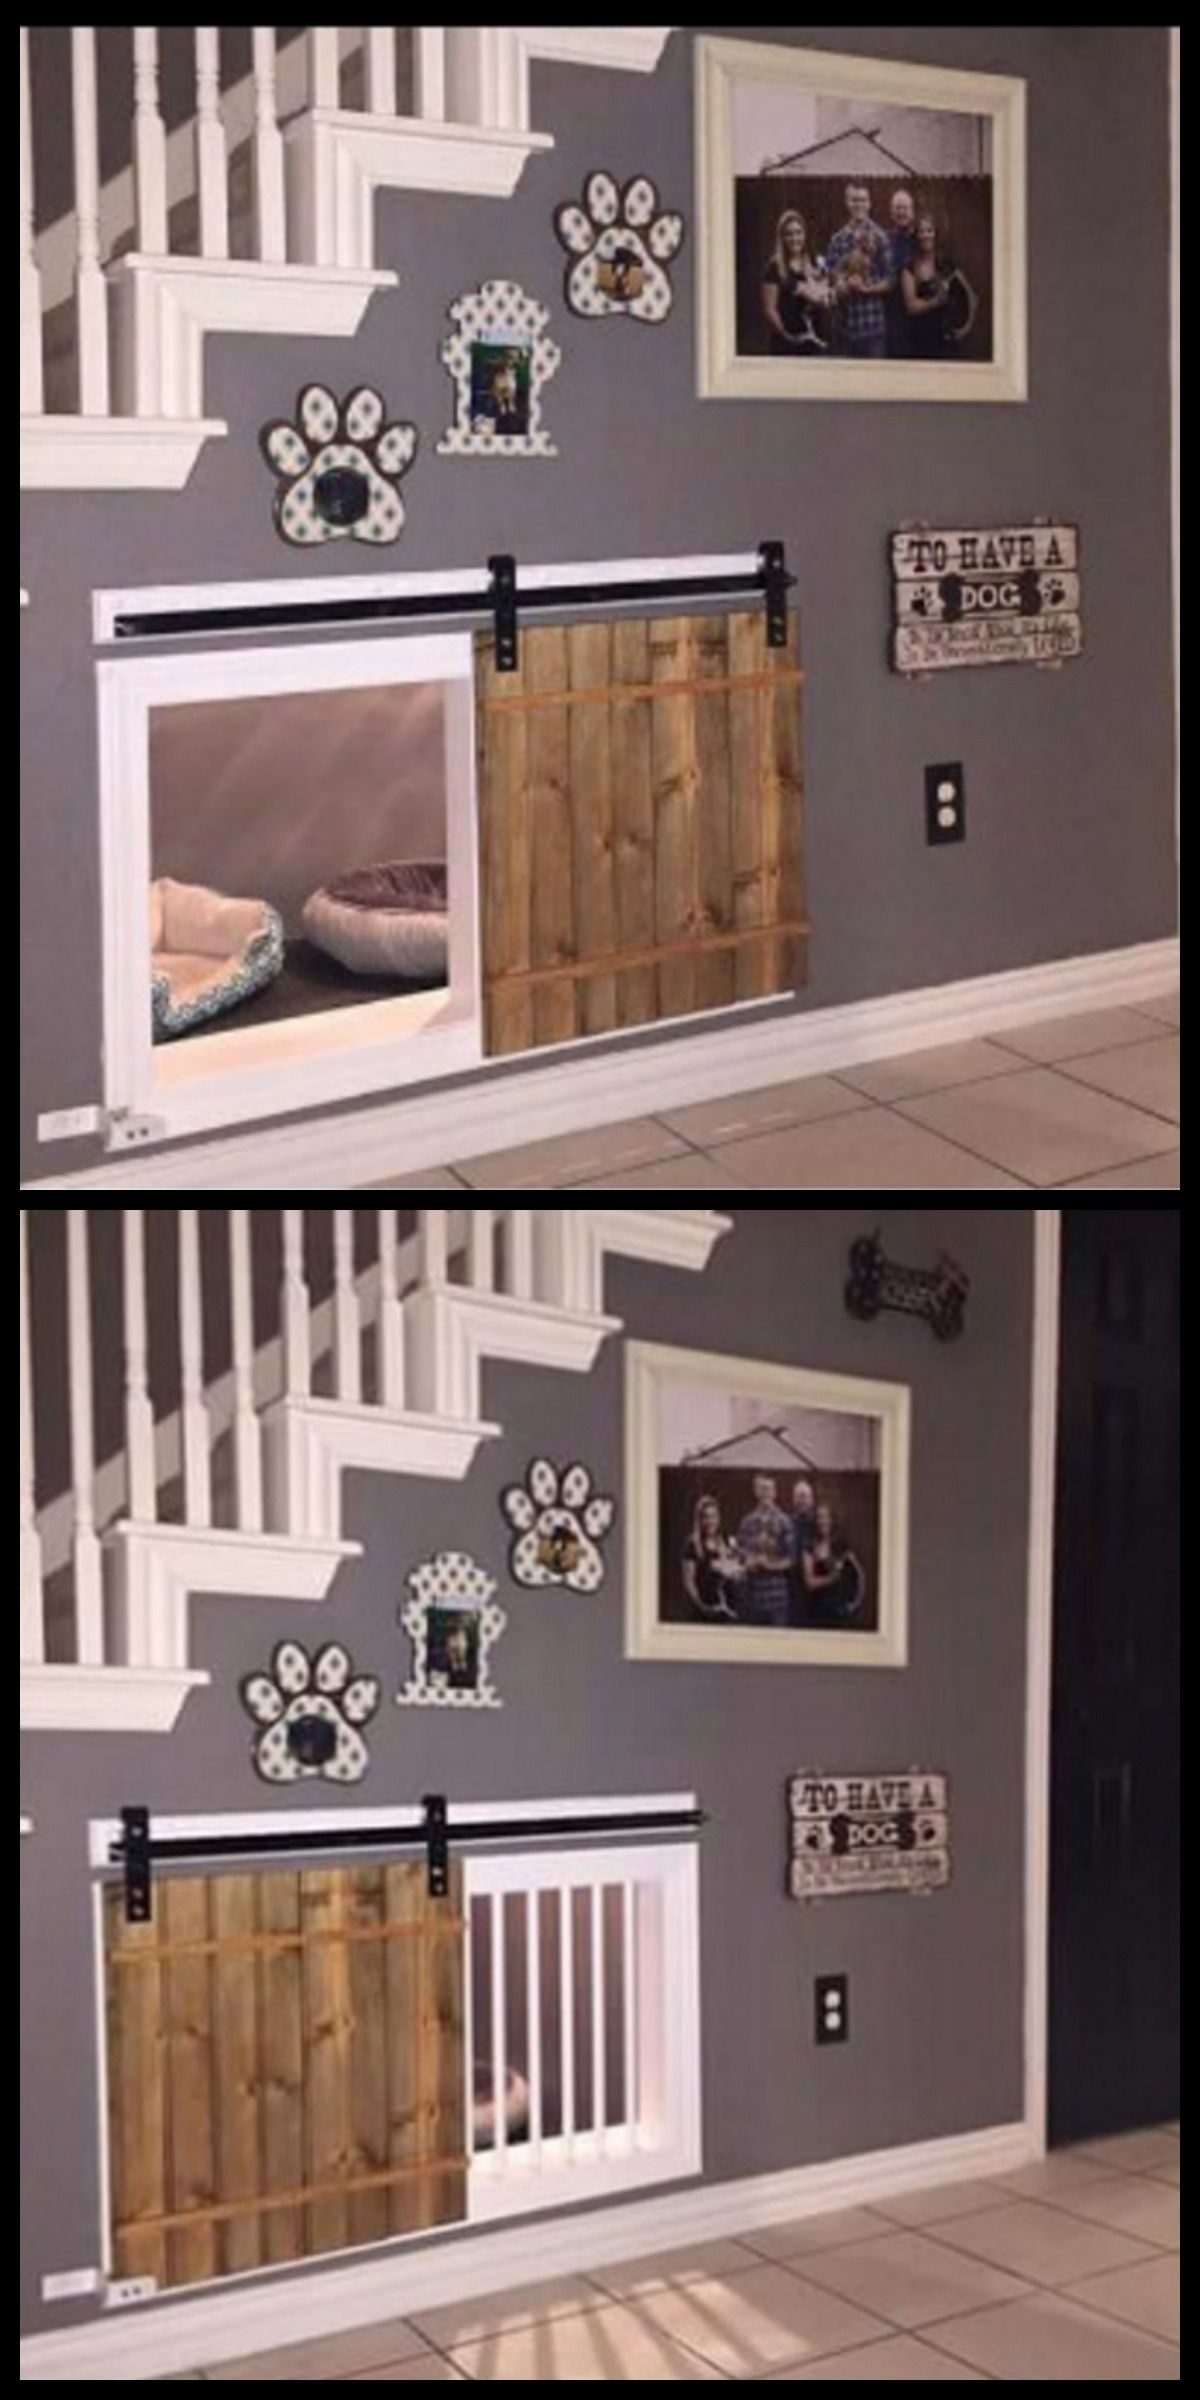 Awesome dog kennel under the stairs design idea if you want an indoor dog house utilizing the - Pets for small spaces style ...